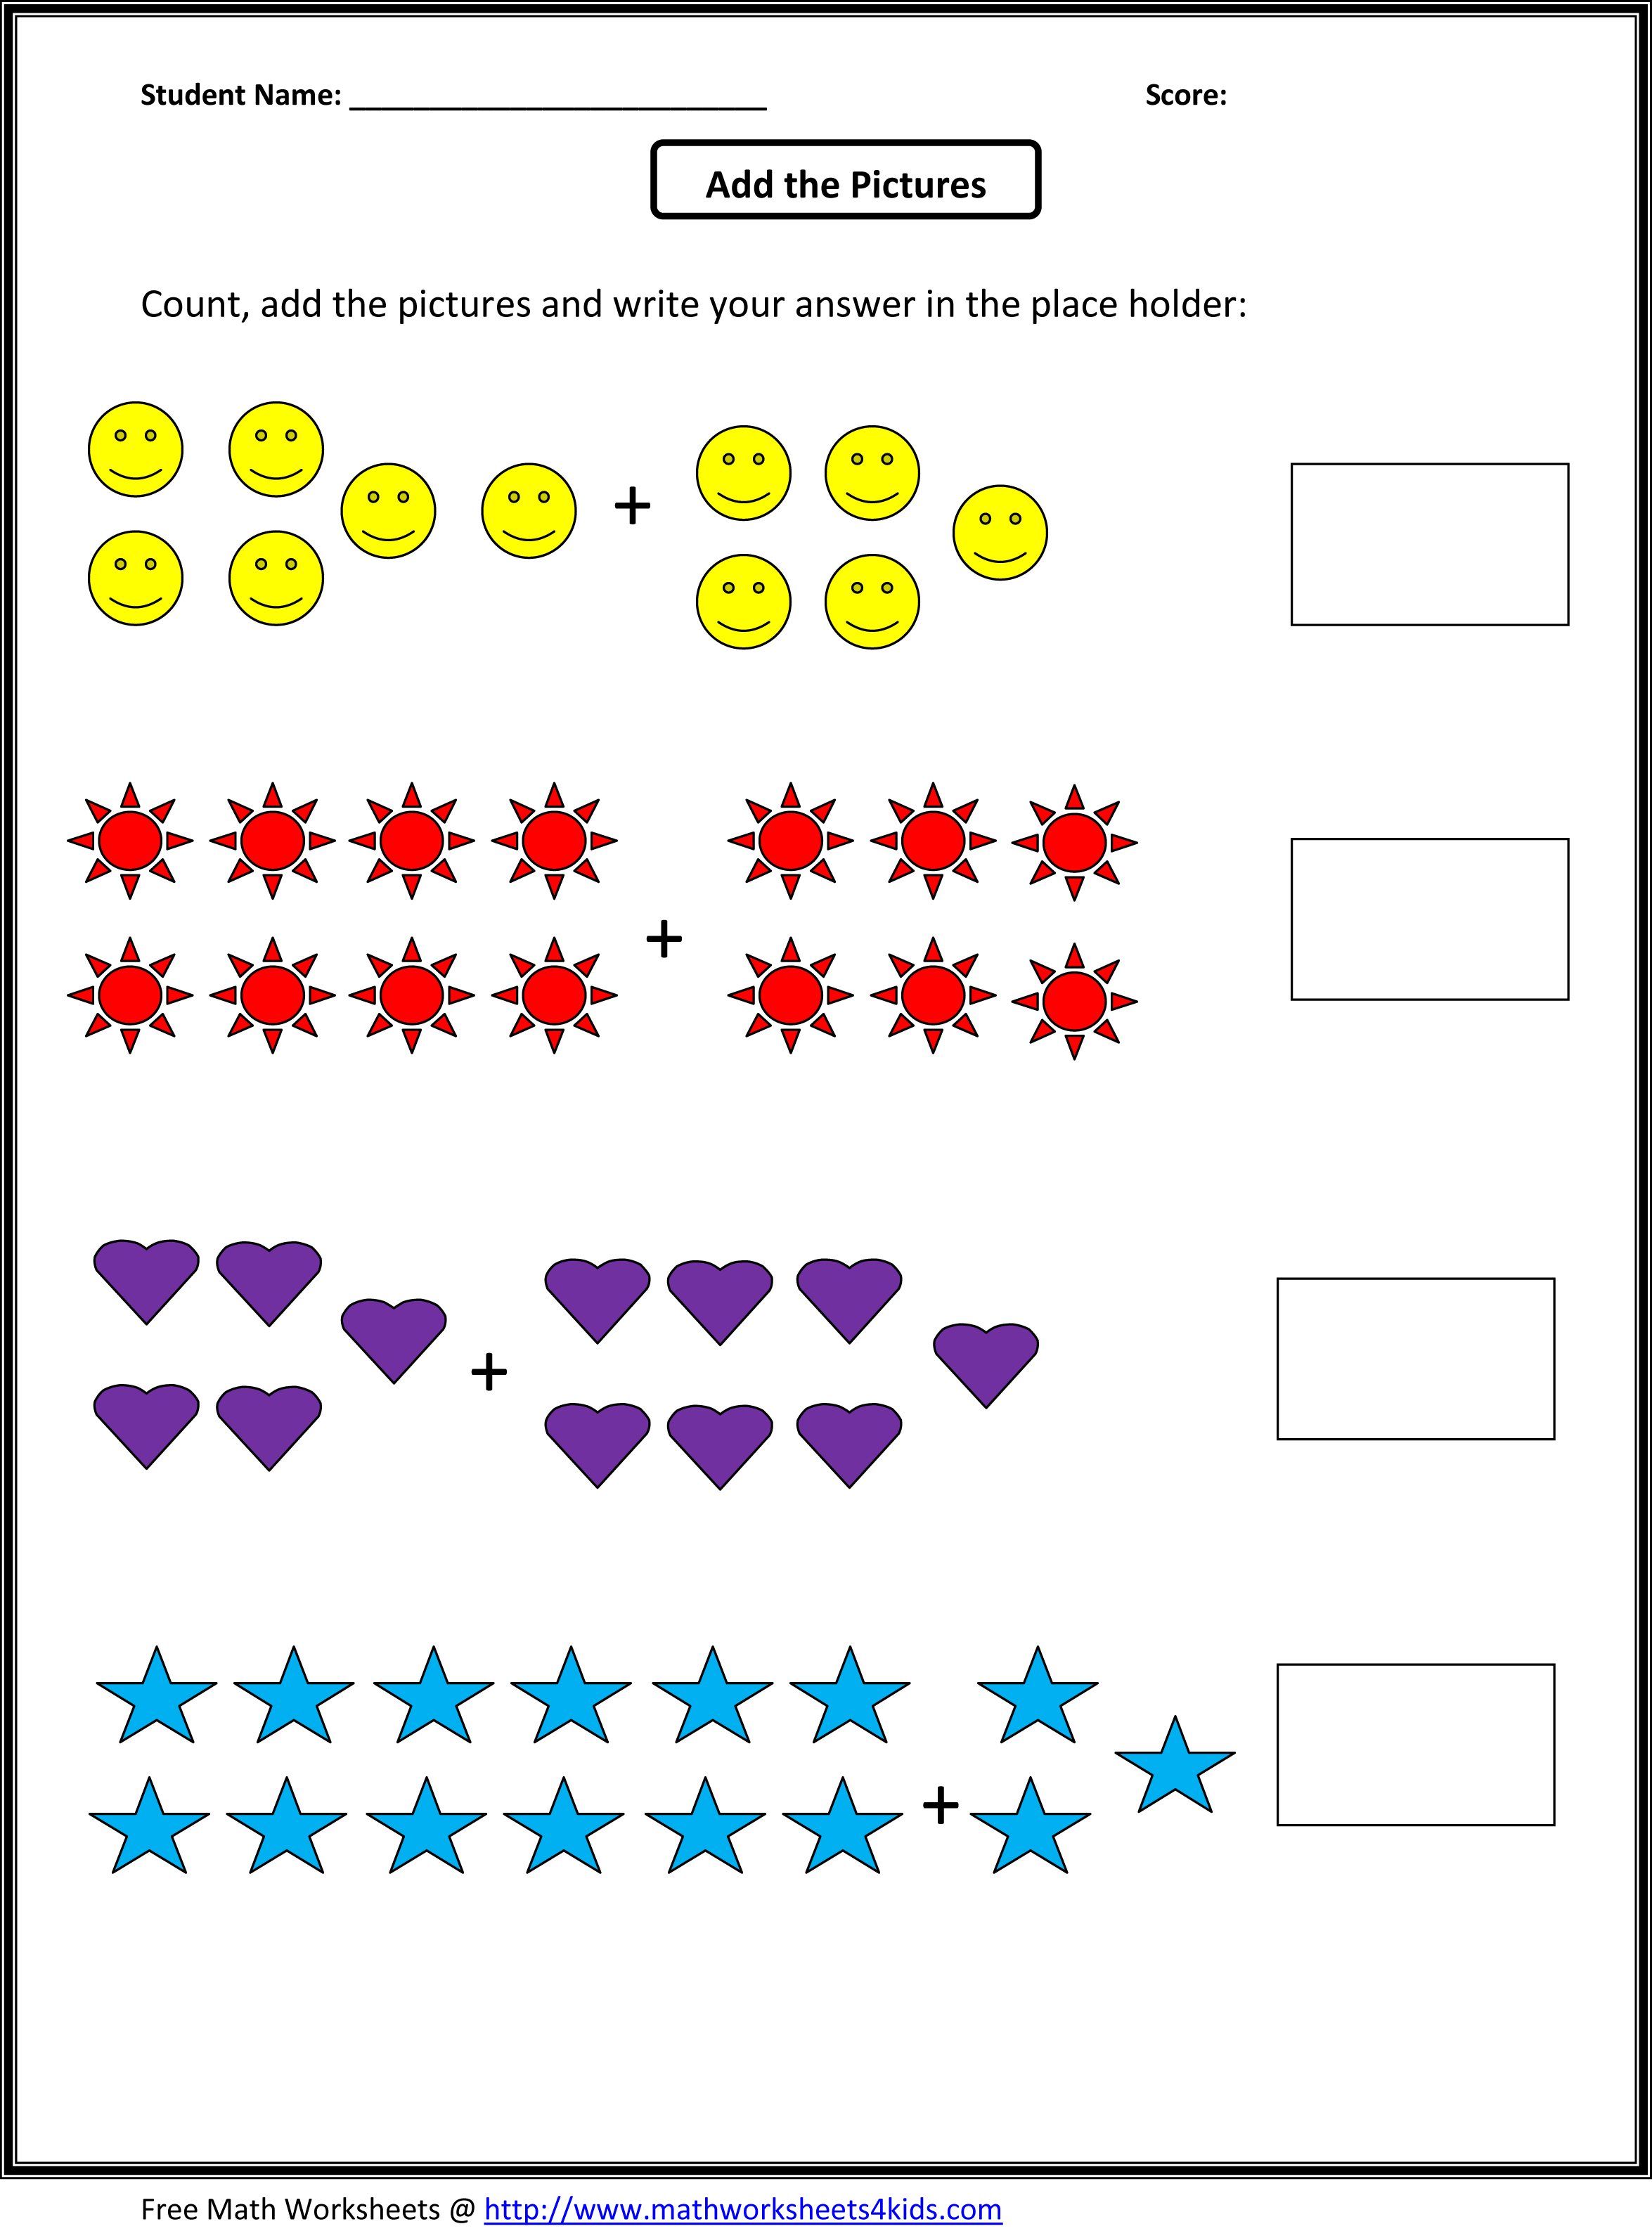 Proatmealus  Terrific Grade  Maths Worksheet  Reocurent With Goodlooking Math Worksheets For St Grade Free  Reocurent With Captivating Printable Maths Worksheets Ks Also Times Tables Challenge Worksheet In Addition Ure Phonics Worksheet And Th Grade Algebra Worksheets With Answers As Well As Practice Times Tables Worksheets Additionally Tell The Time Worksheet From Reocurentcom With Proatmealus  Goodlooking Grade  Maths Worksheet  Reocurent With Captivating Math Worksheets For St Grade Free  Reocurent And Terrific Printable Maths Worksheets Ks Also Times Tables Challenge Worksheet In Addition Ure Phonics Worksheet From Reocurentcom